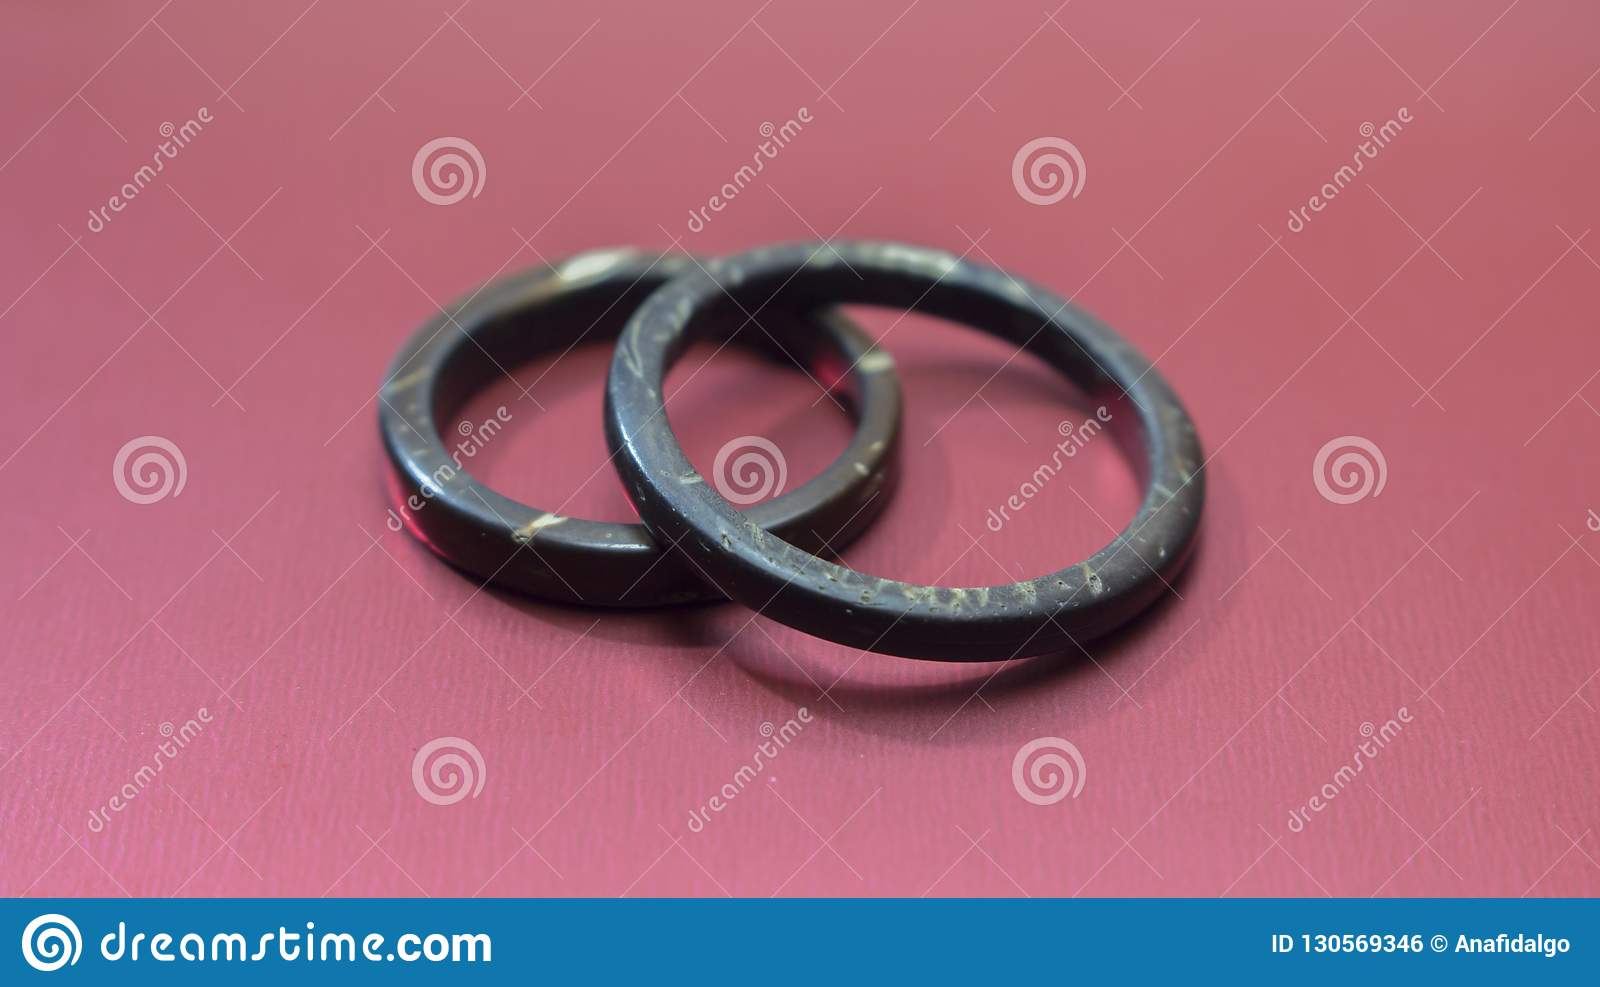 Handmade Coconut Rings With Imperfections In Red Background Artisan